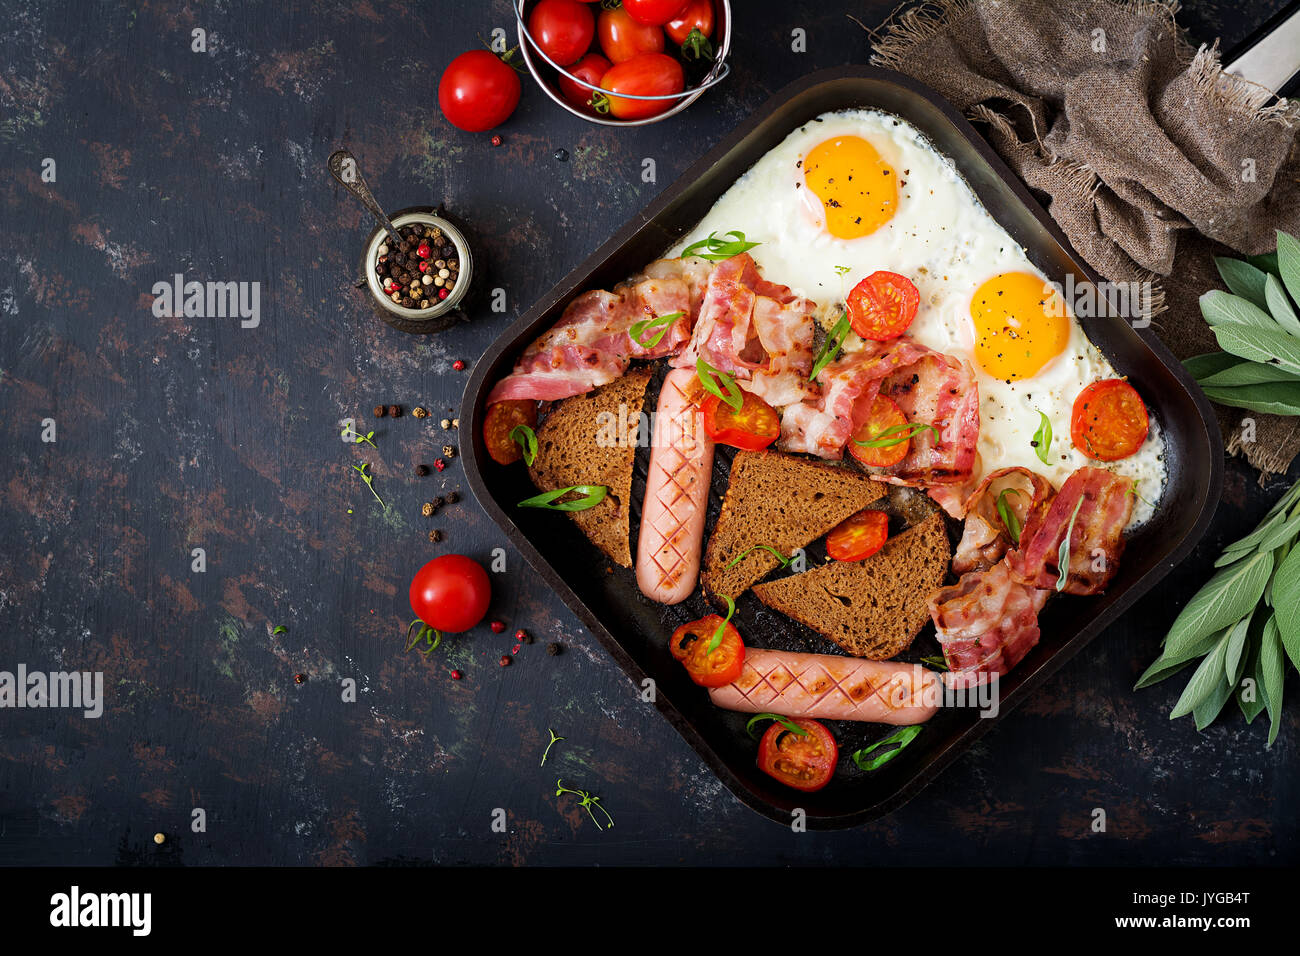 English breakfast - fried egg, sausage, tomatoes, bacon and toast. Top view. Flat lay - Stock Image